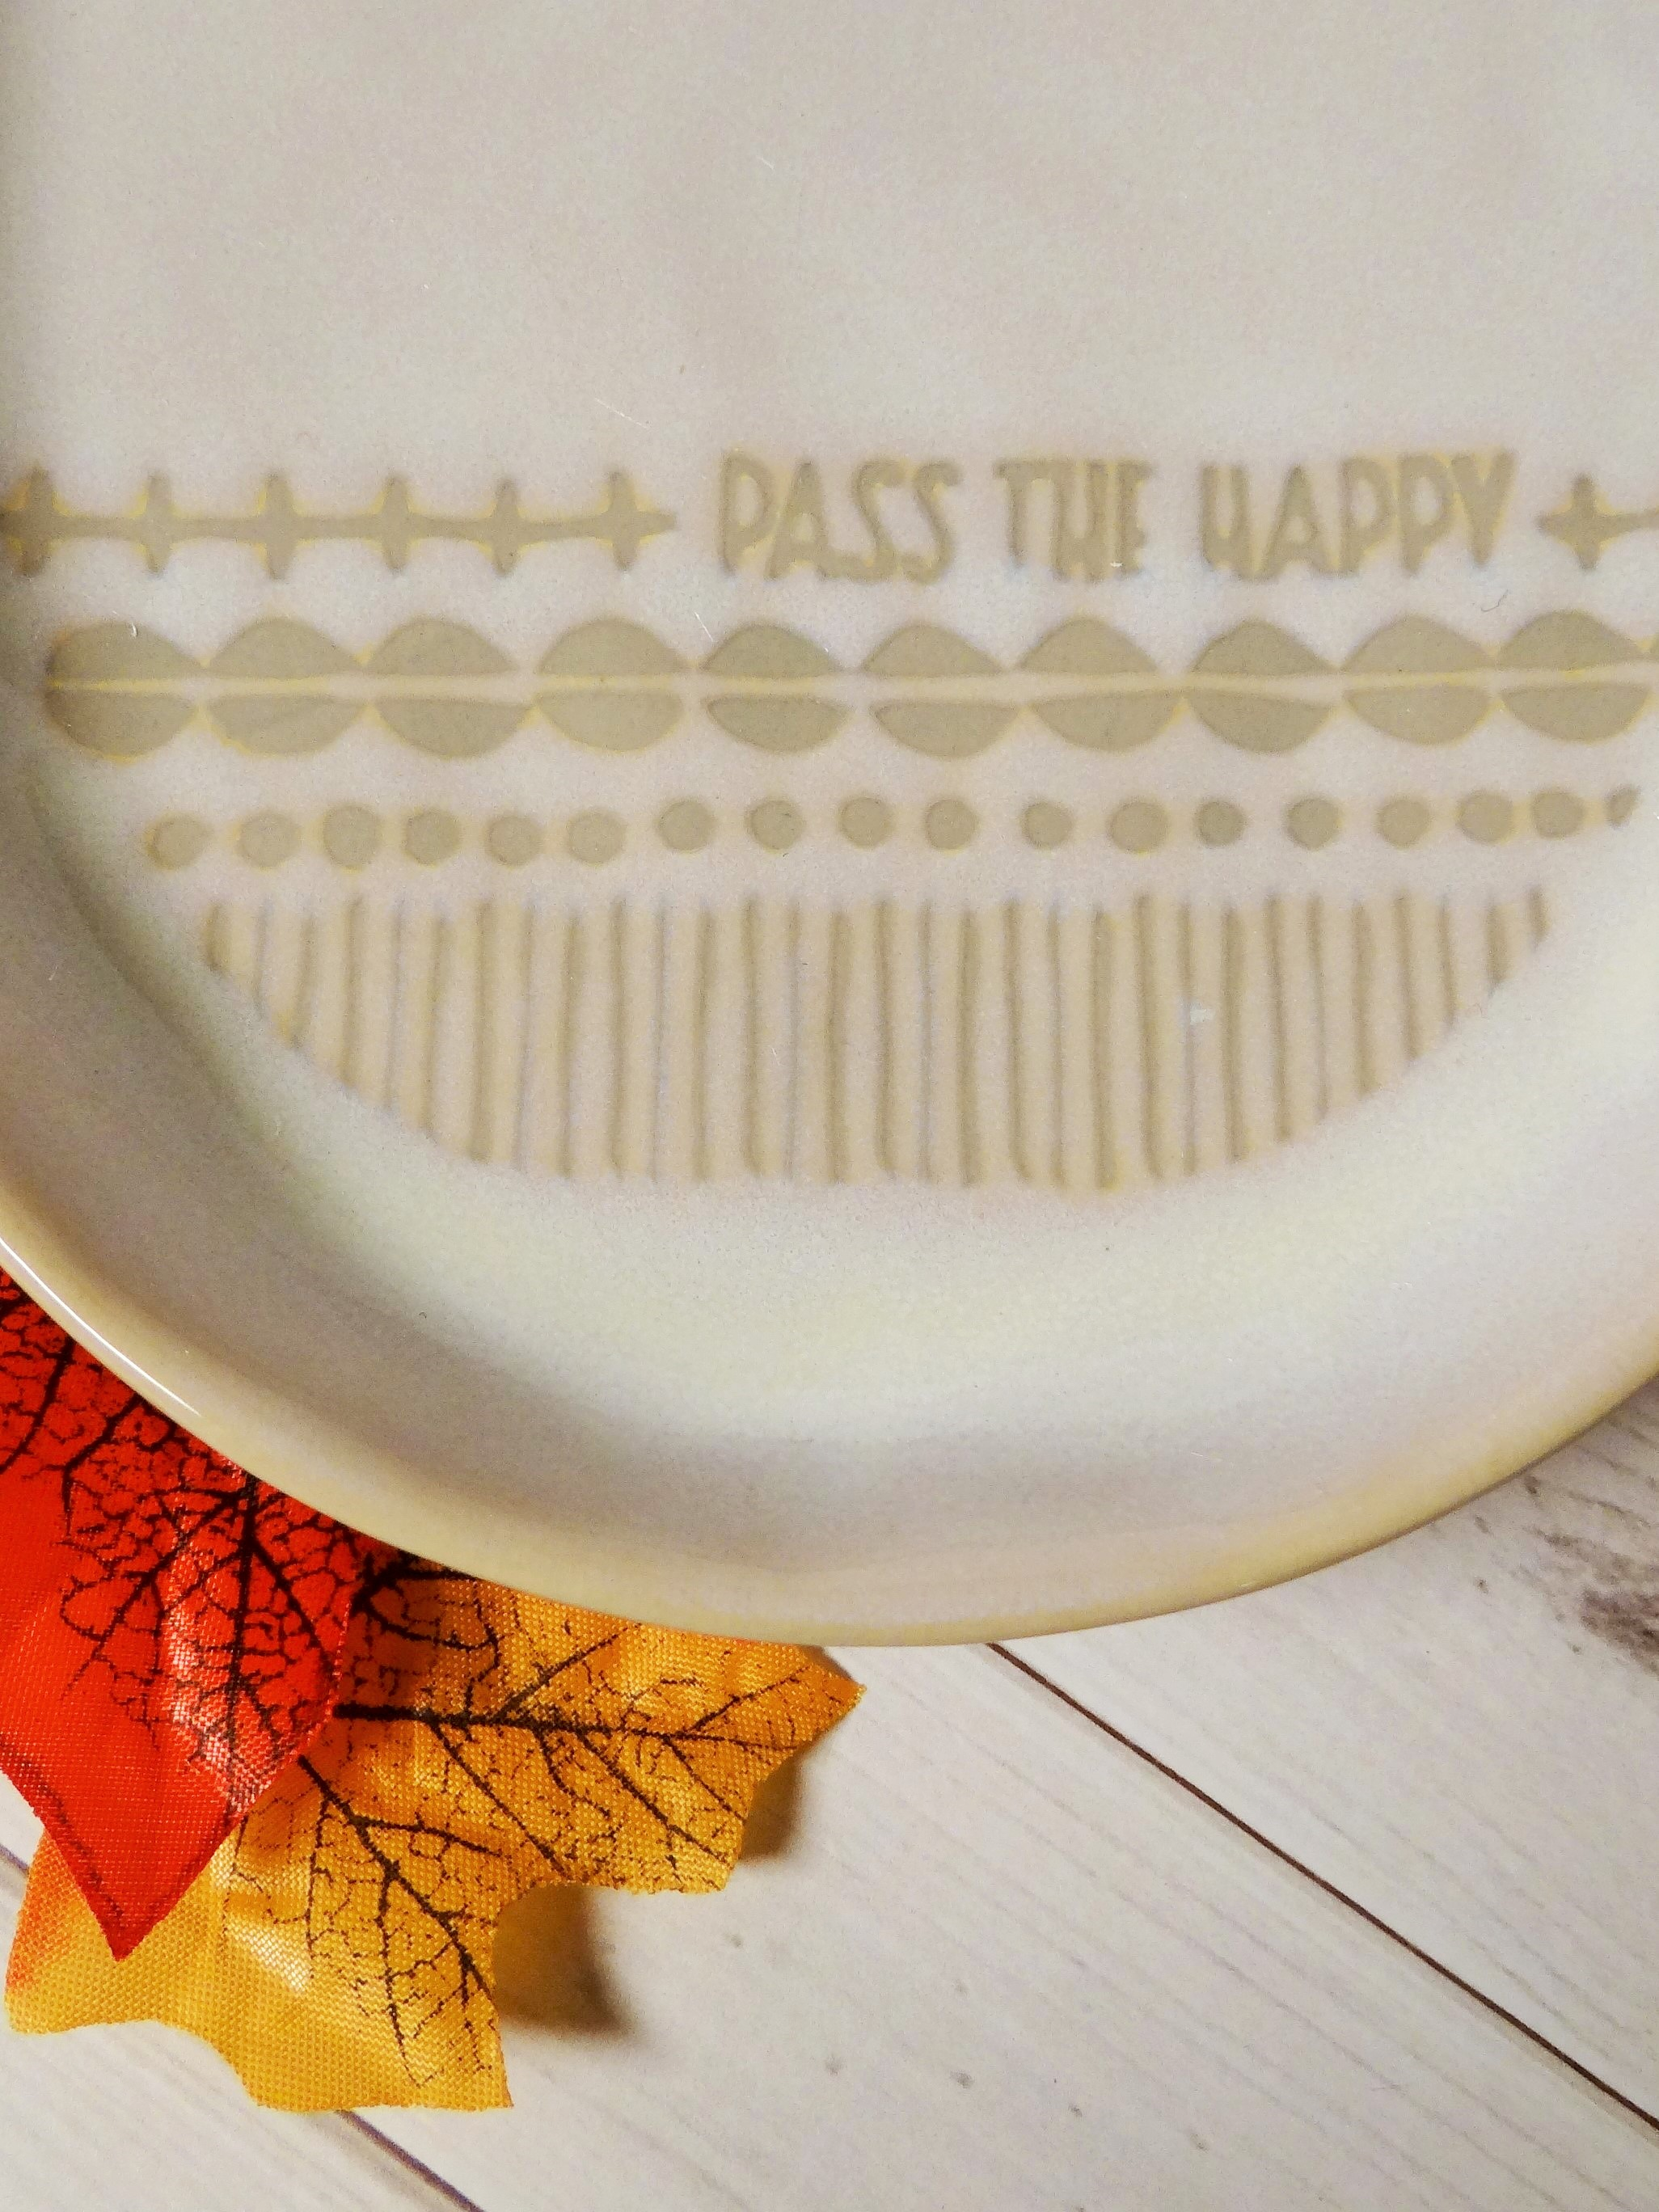 Pass The Happy Plate | Hallmark Home Fall Entertaining Giveaway ...